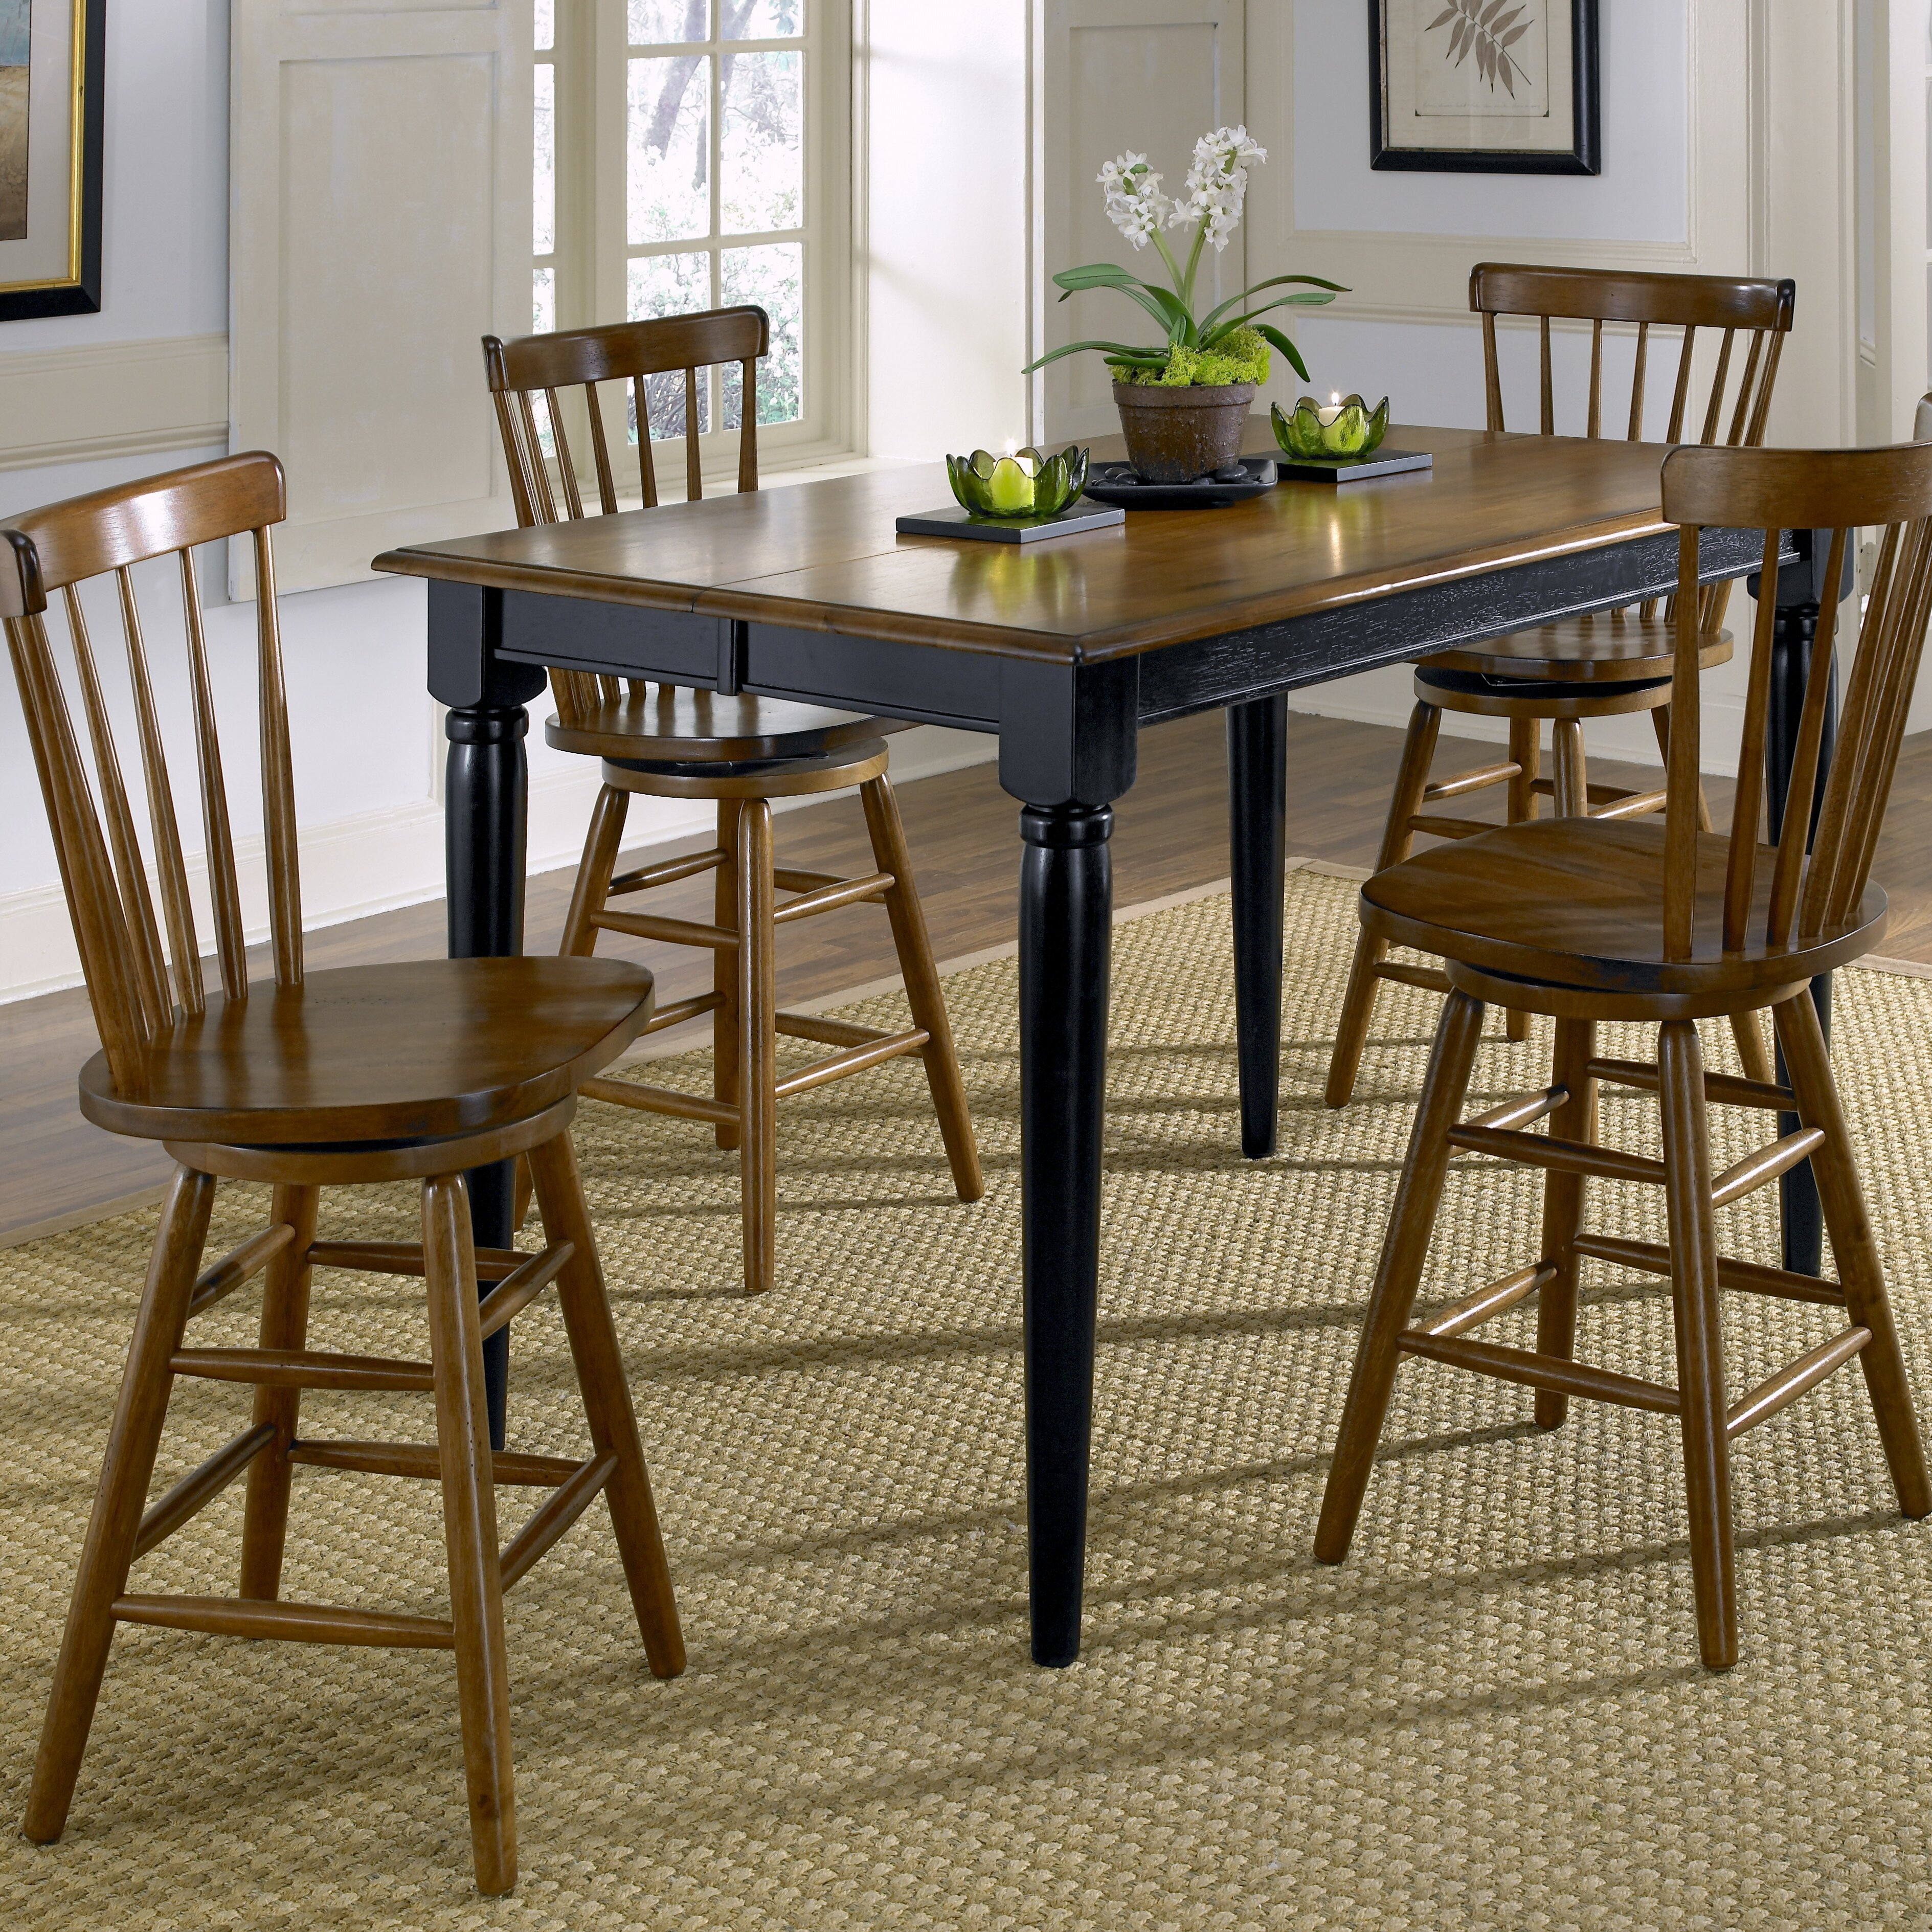 Liberty Furniture Creations II Casual Dining Gathering Table